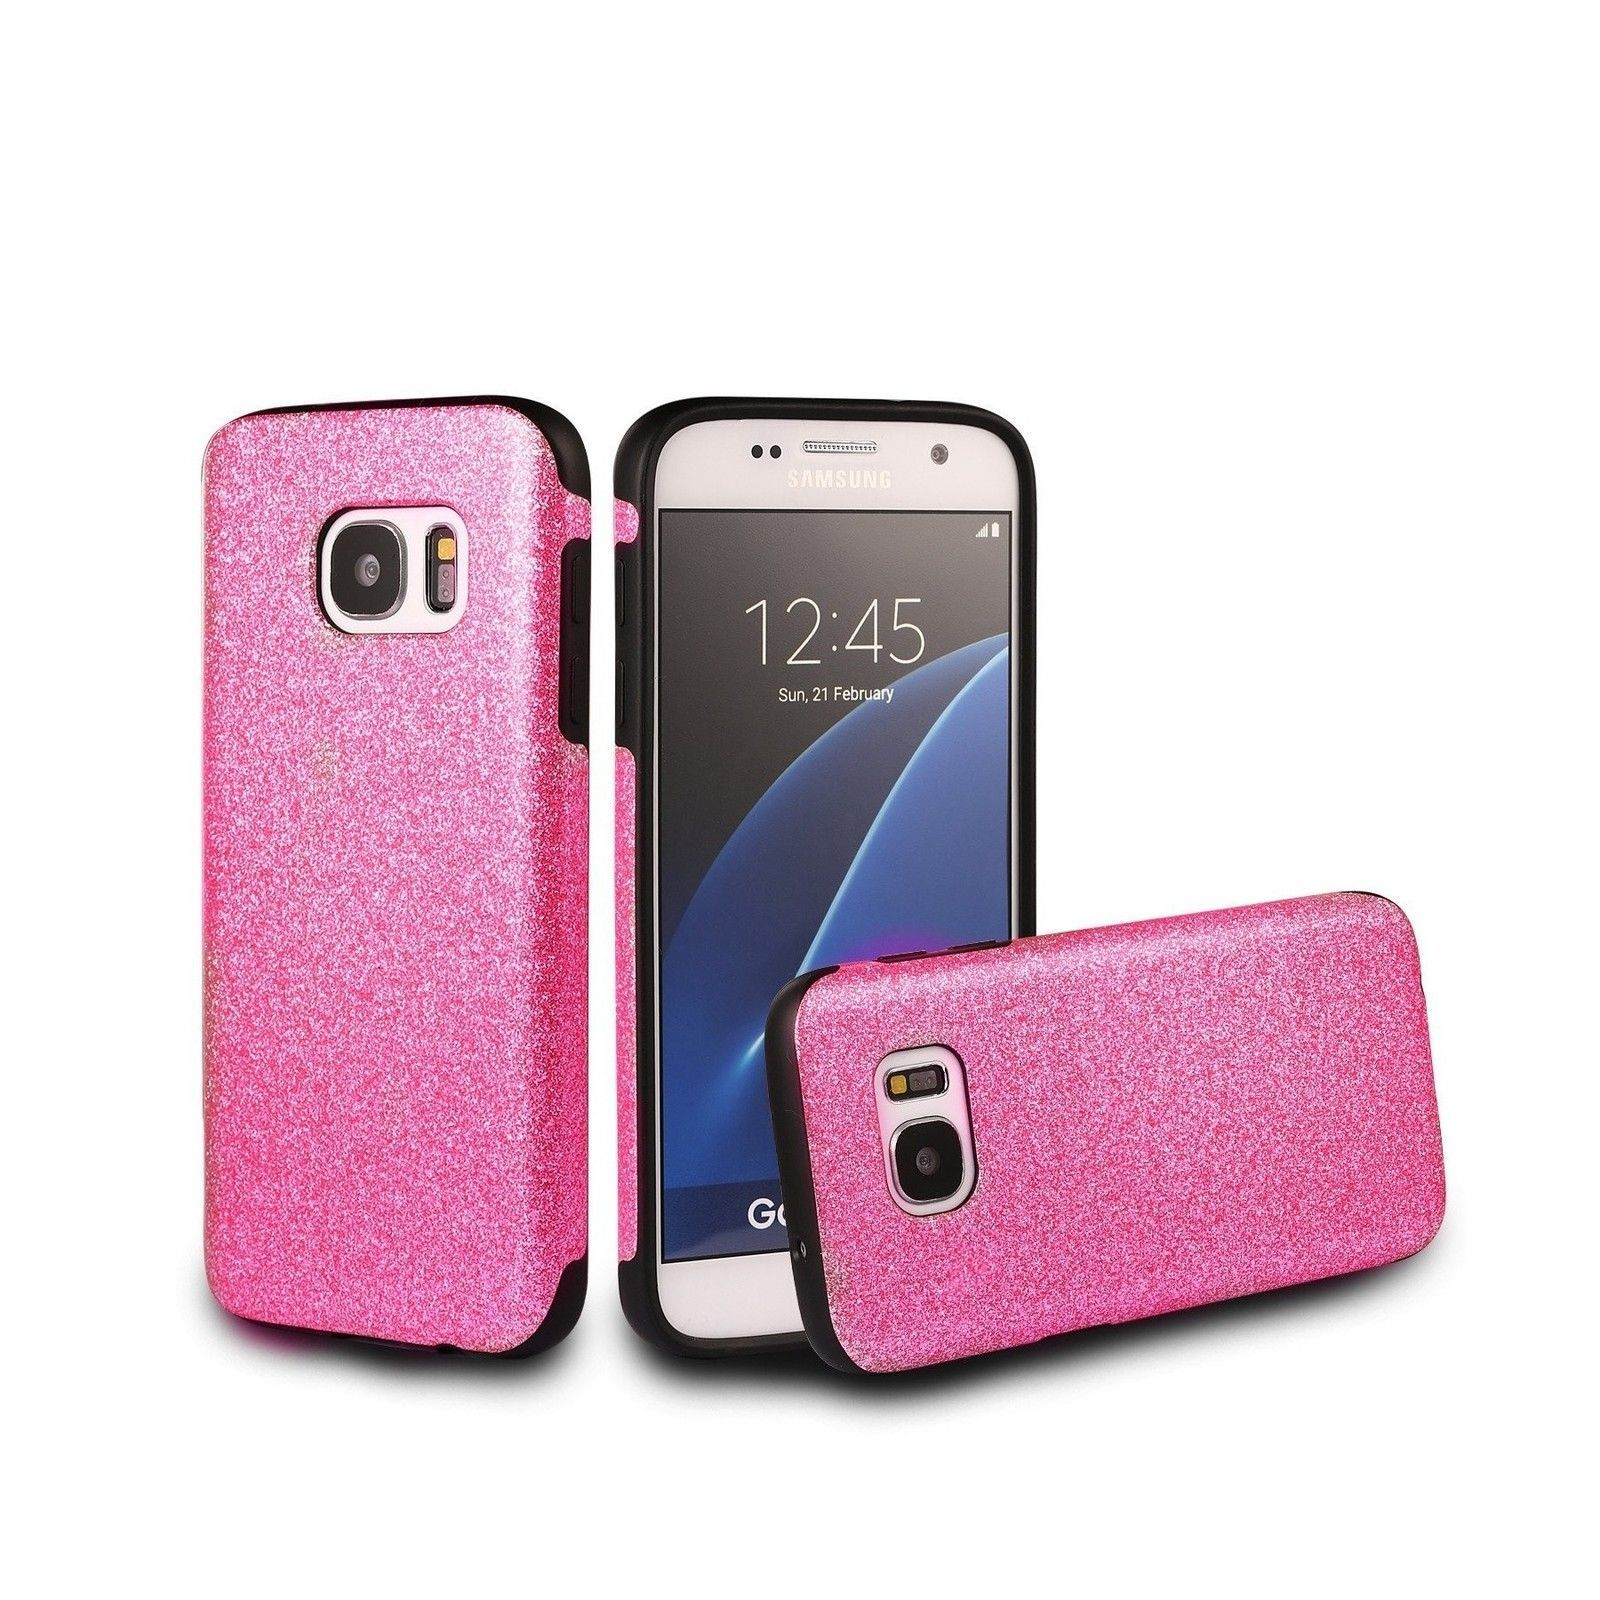 best website 3cad3 8c796 HOT PINK BLING New Cute Shiny Sparkle Glitter Phone Case Cover for ...